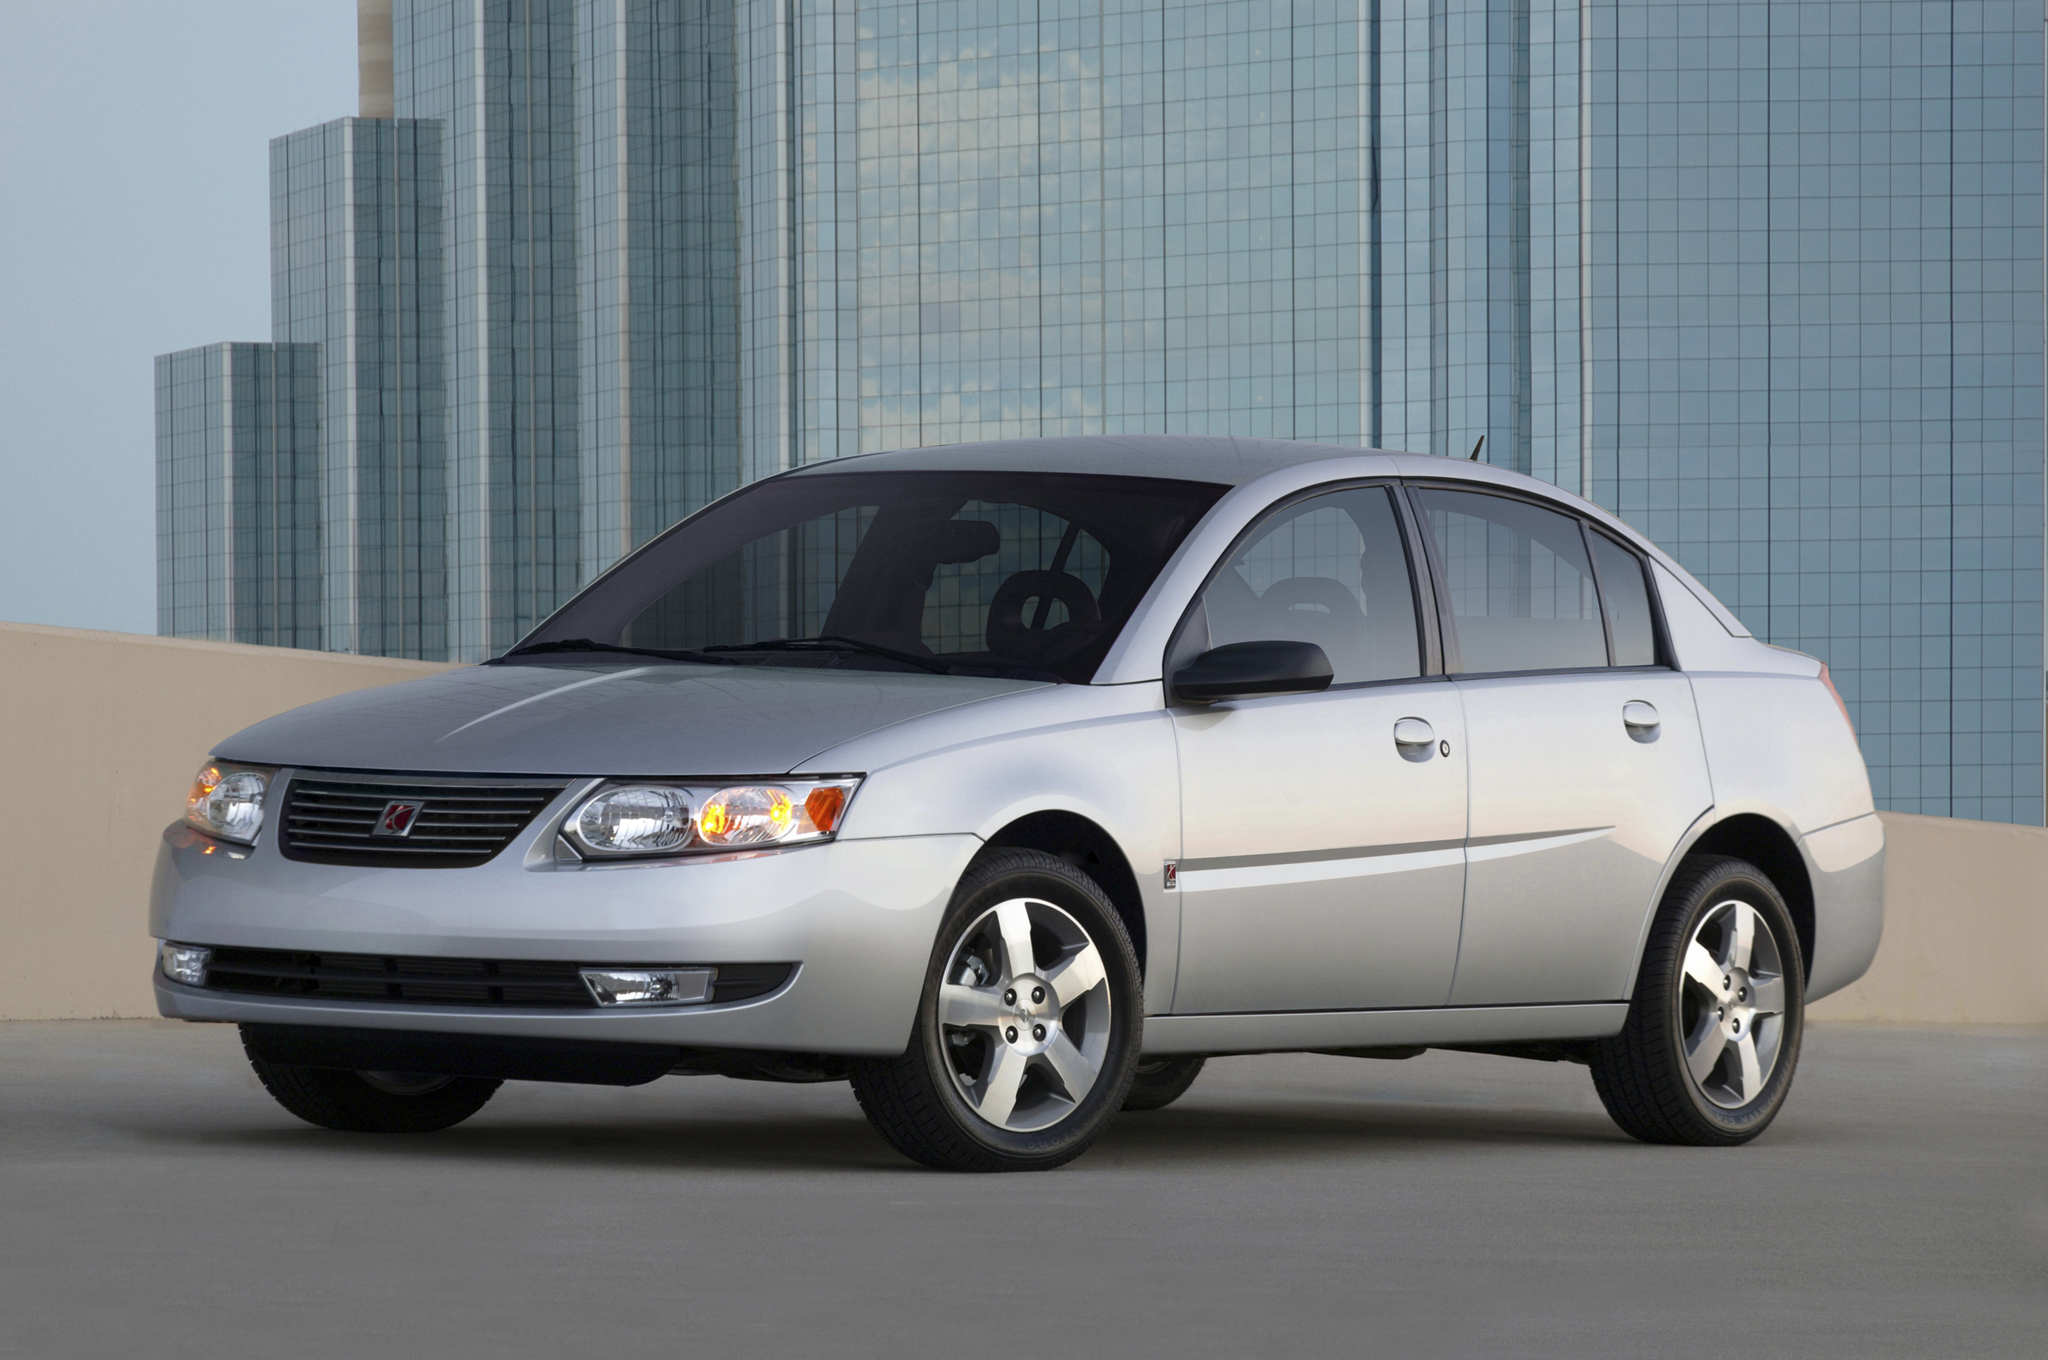 medium resolution of gm expands ignition recall to 1 36 million vehicles including chevrolet hhr saturn ion